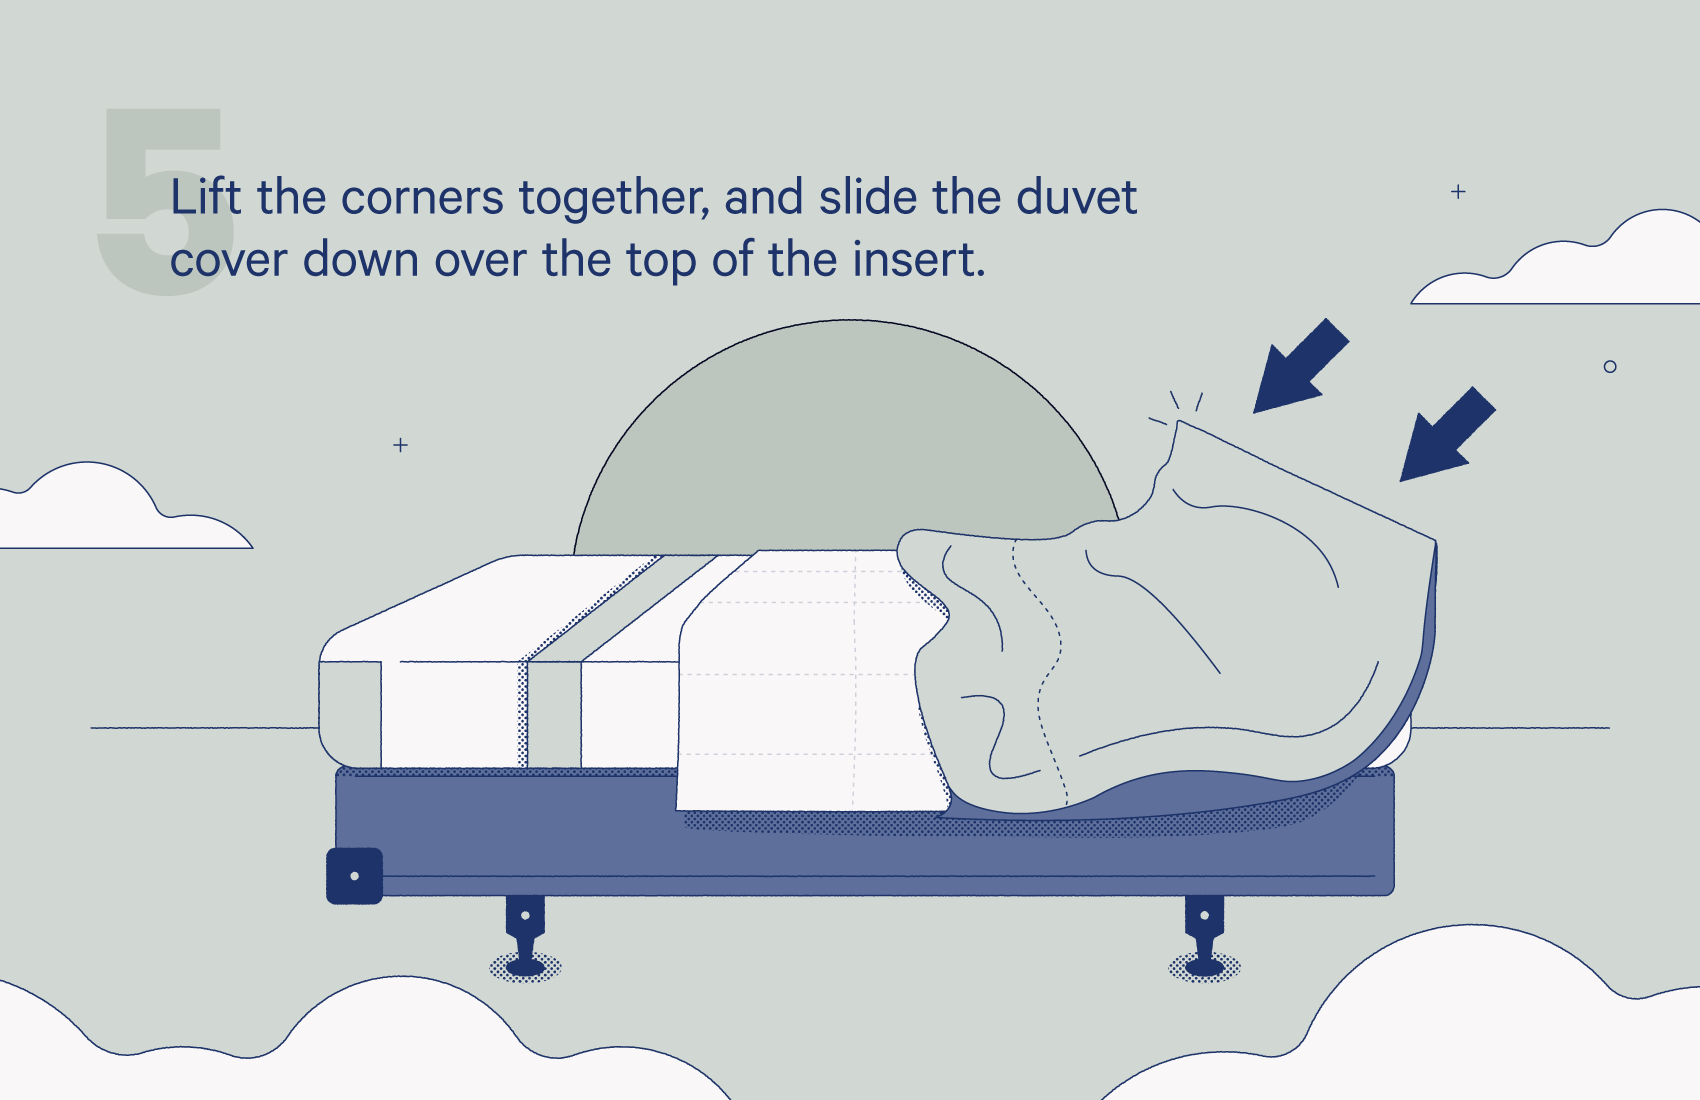 lift the corners together, and slide the duvet cover down over the top of the insert.